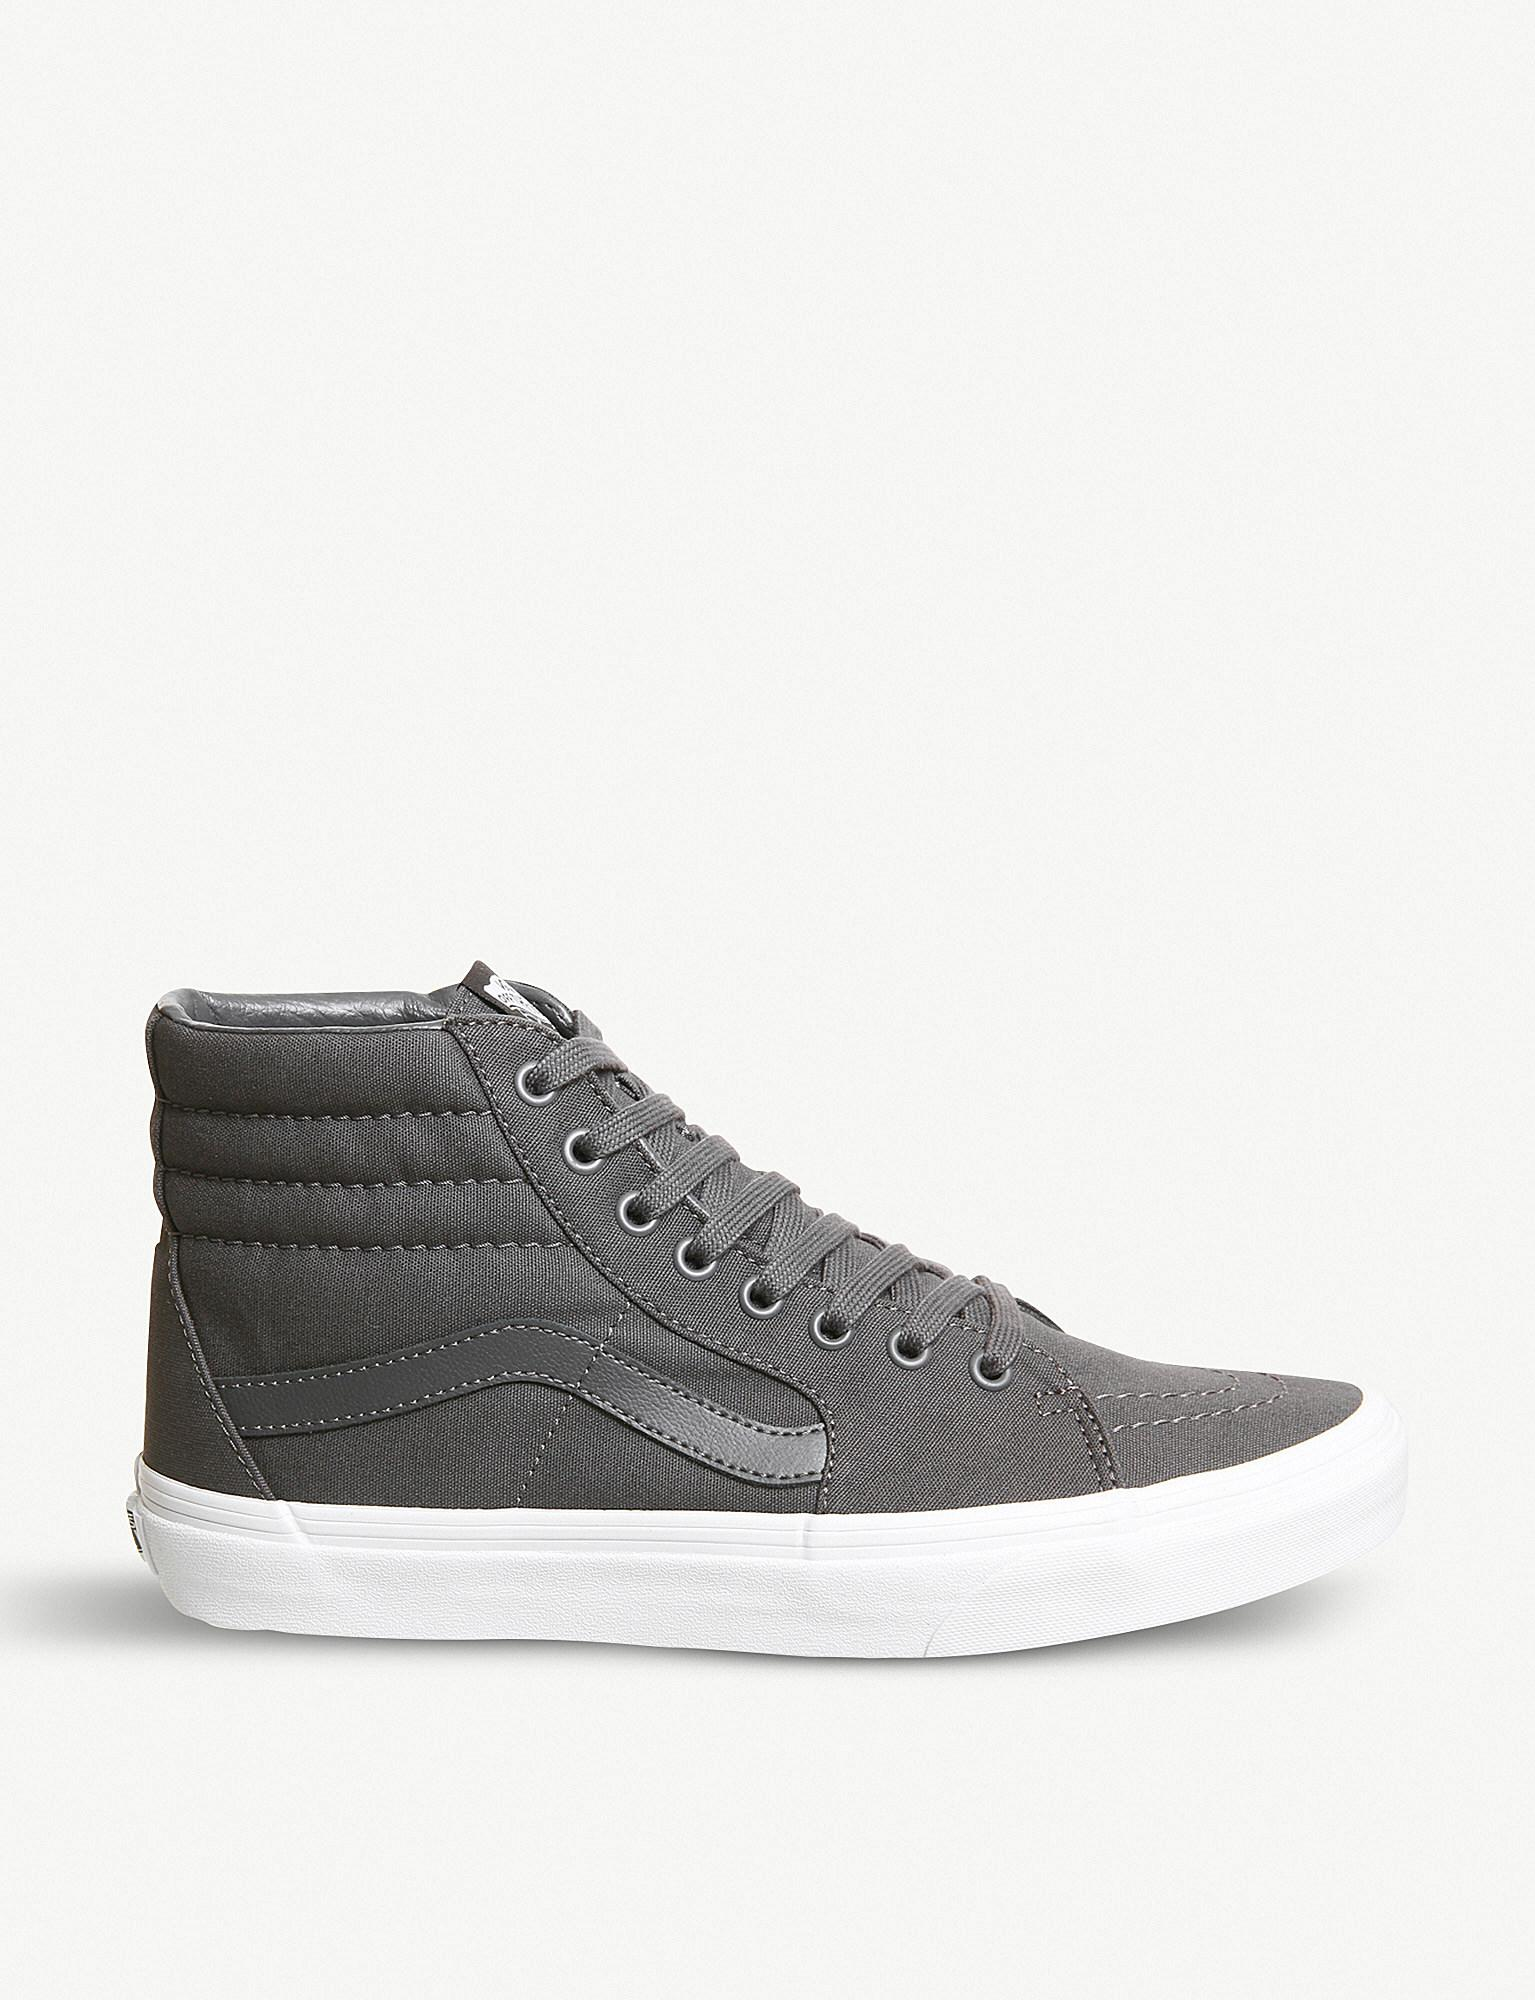 f1b864b39a1c3b Vans Sk8 Hi Canvas Trainers in Gray for Men - Lyst